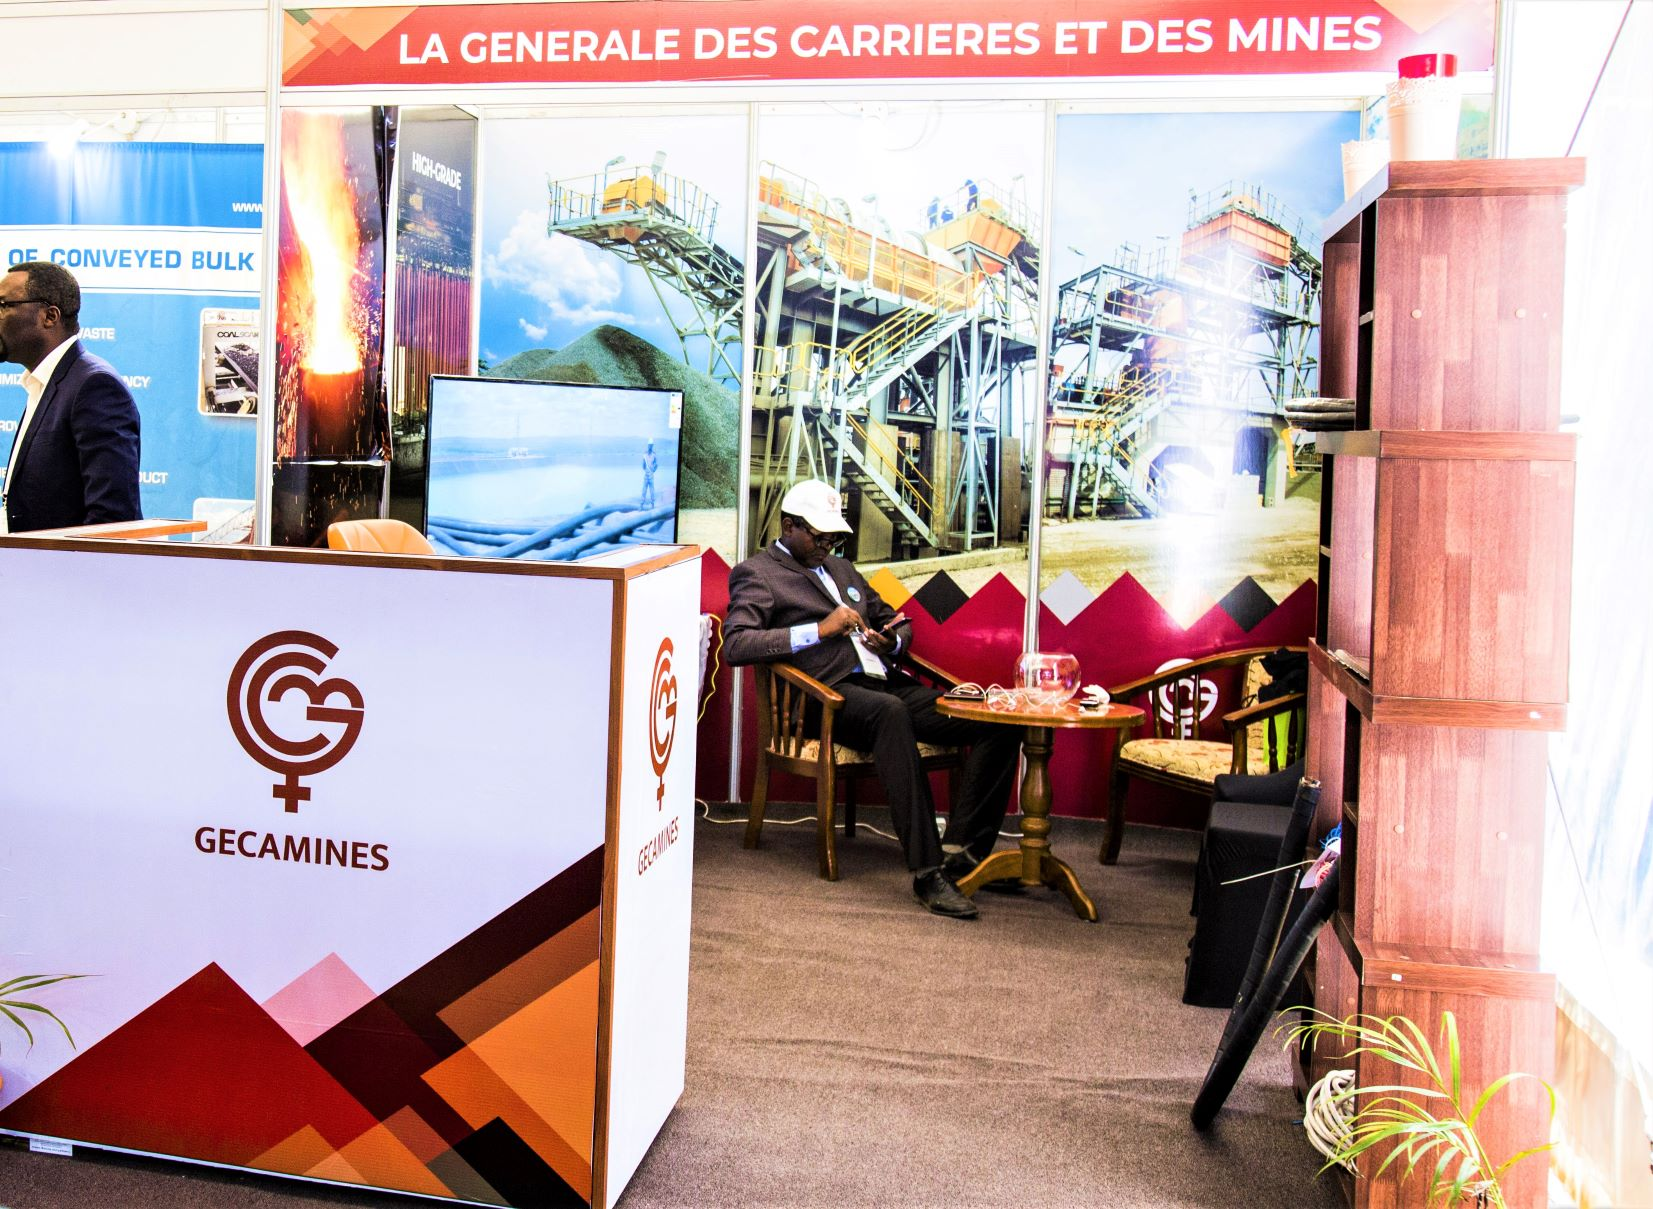 Gécamines envisions to increase copper production.